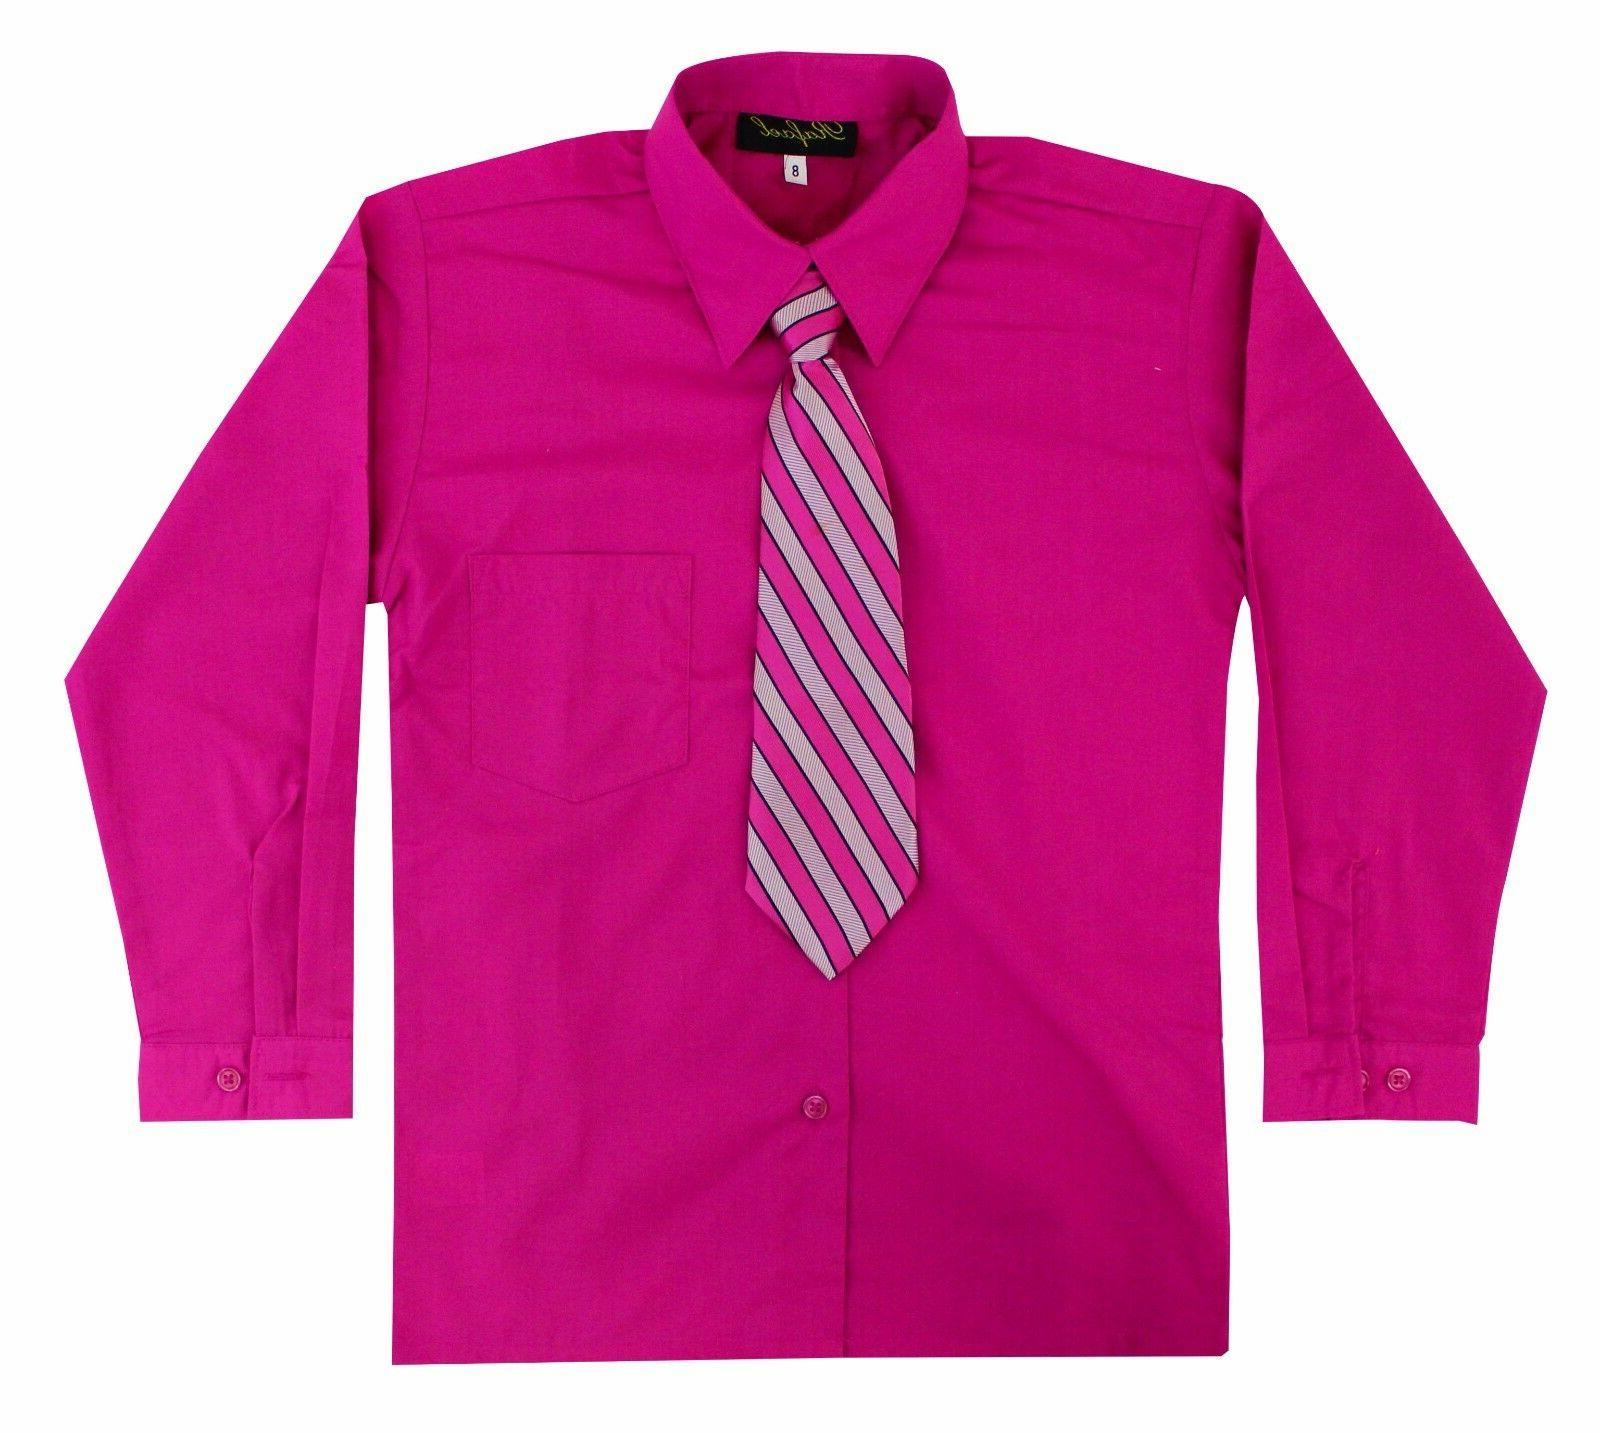 Kids Toddlers Boys Sleeve Shirt Tie Size to